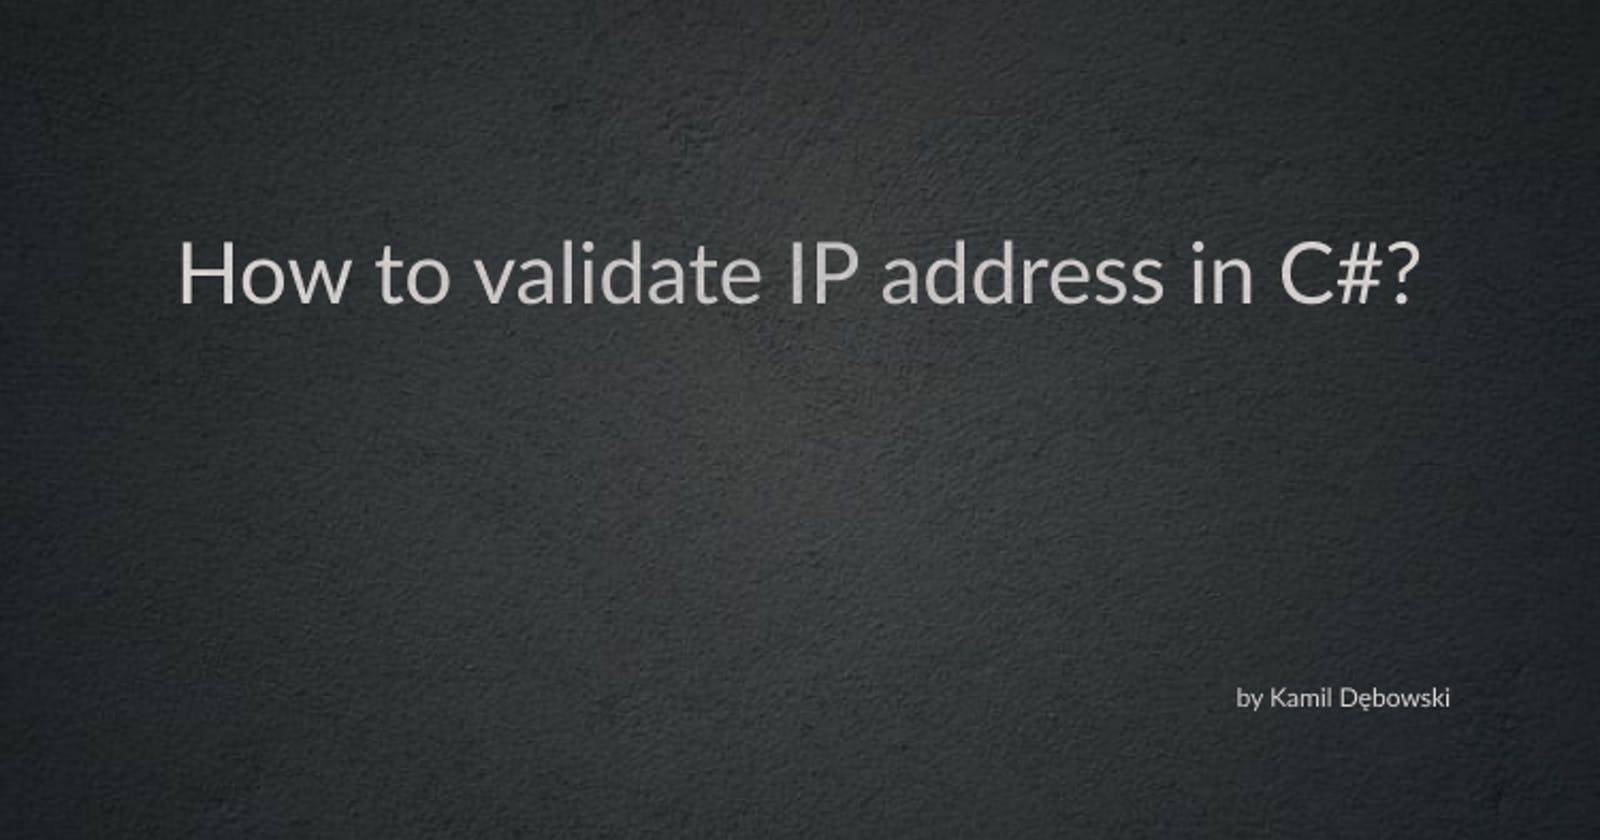 How to validate IP address in C#?